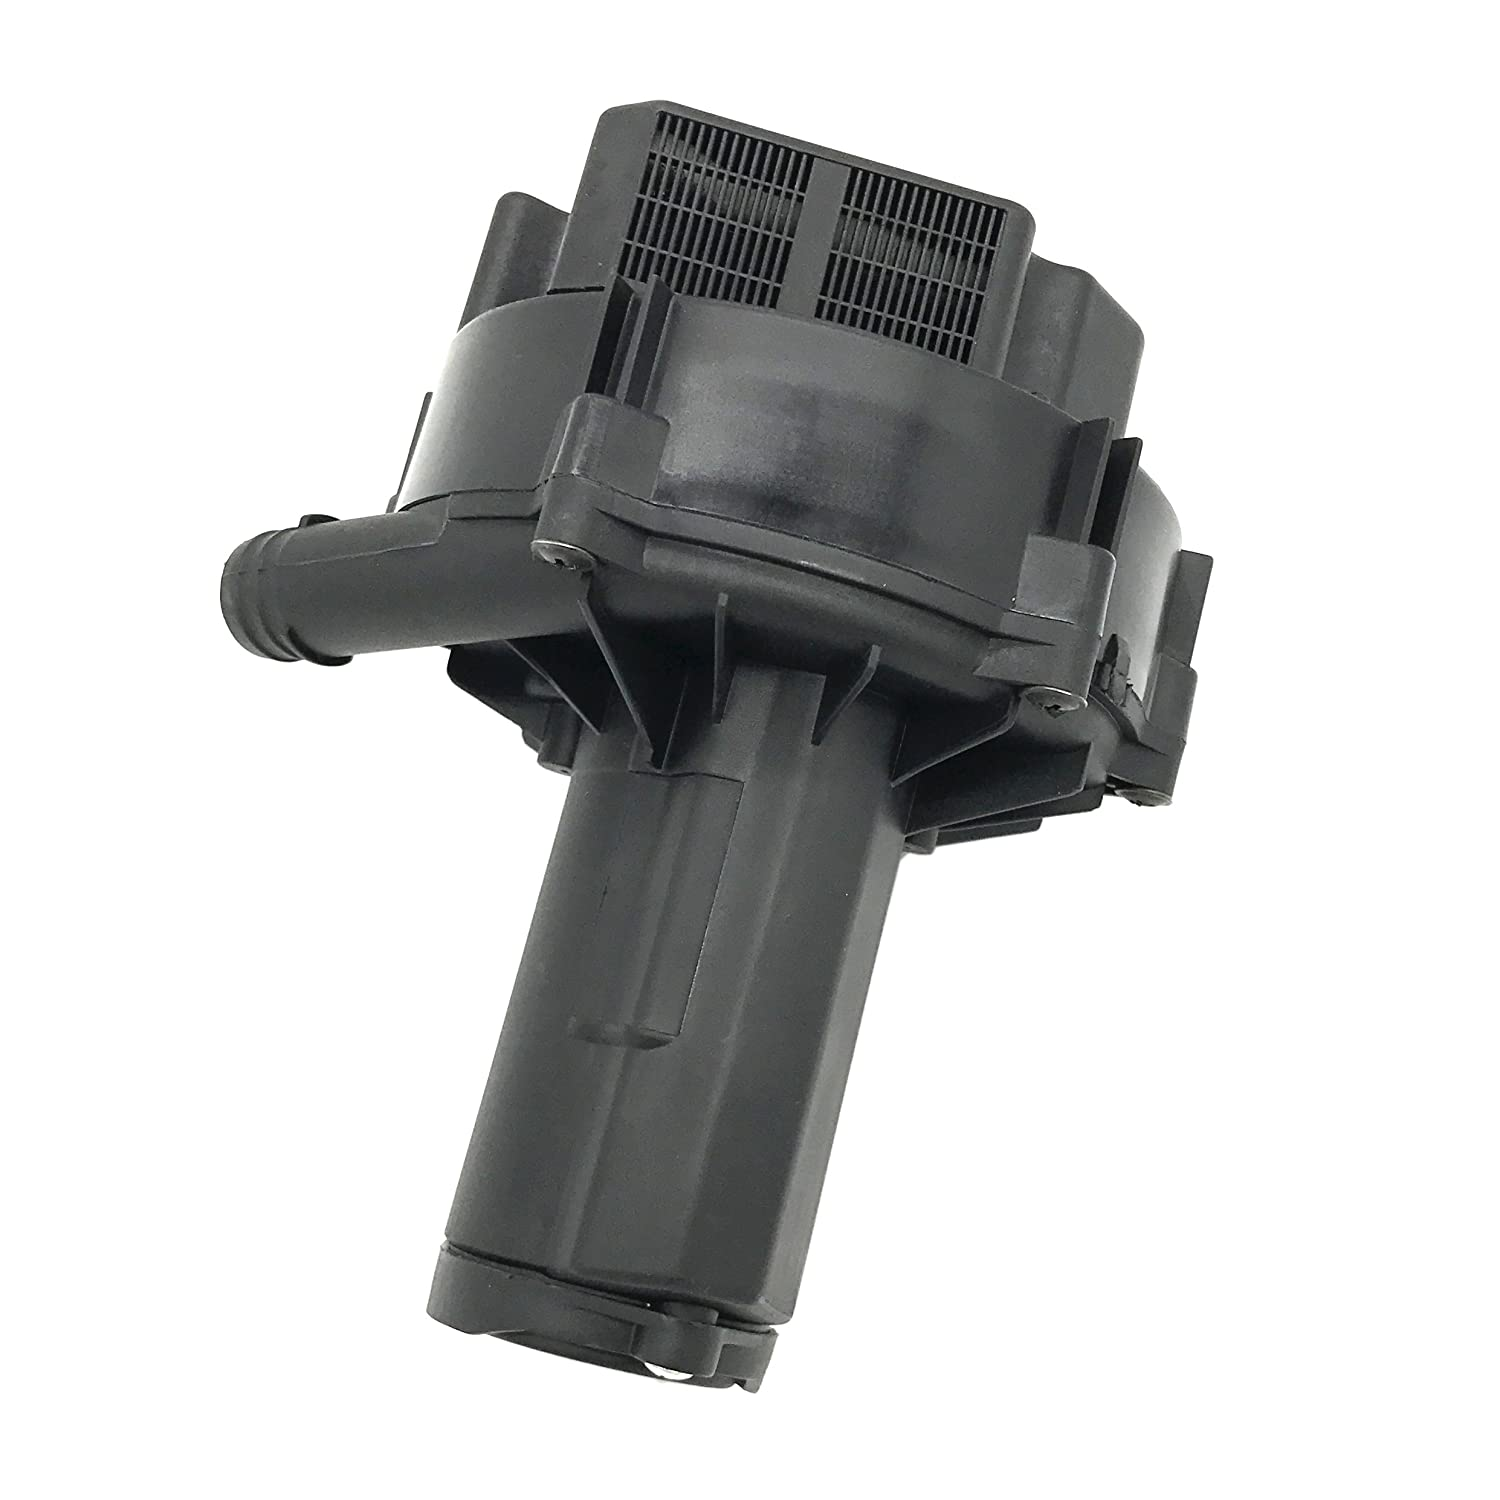 Emission Control Secondary Air Injection Pump Smog Pump for Mercedes A0001403785 Yupin Auto Parts Co.; Ltd.